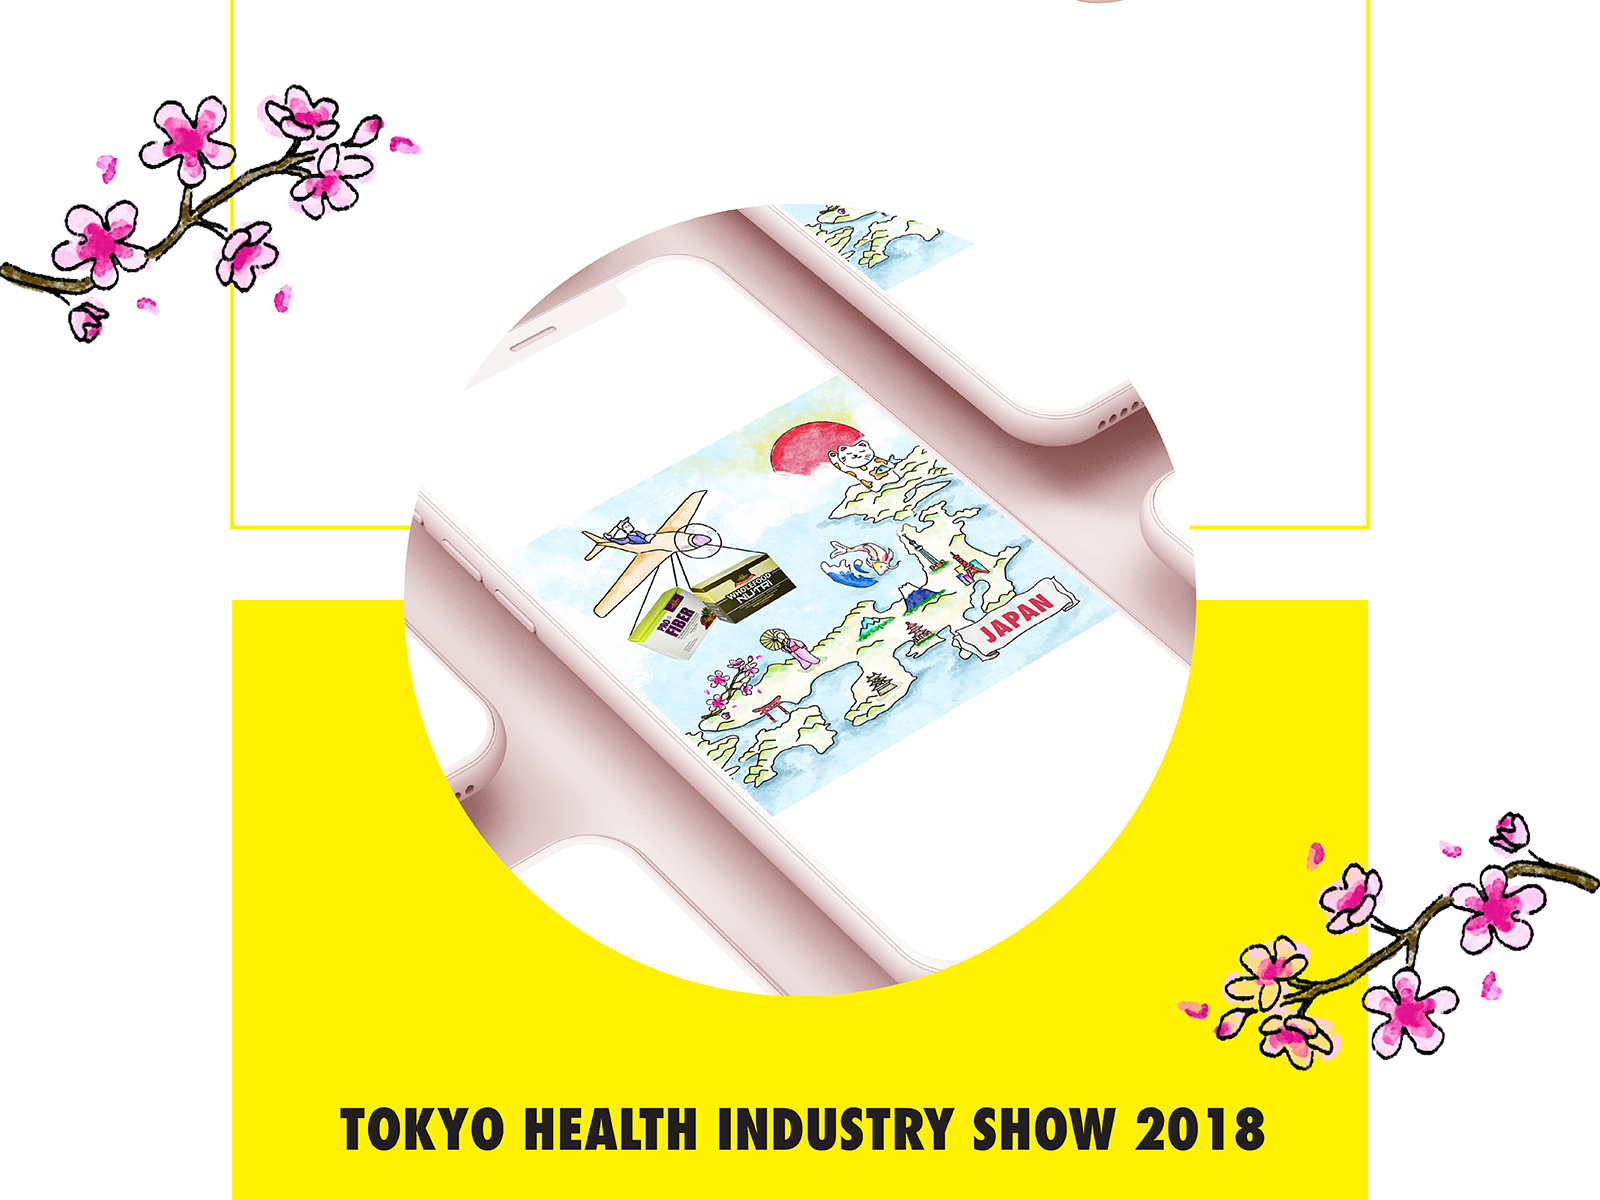 Y2S Wellness social media management post illustration of their Japan trade show attendance viewed on a mobile device with surrounding illustration of sakura flowers